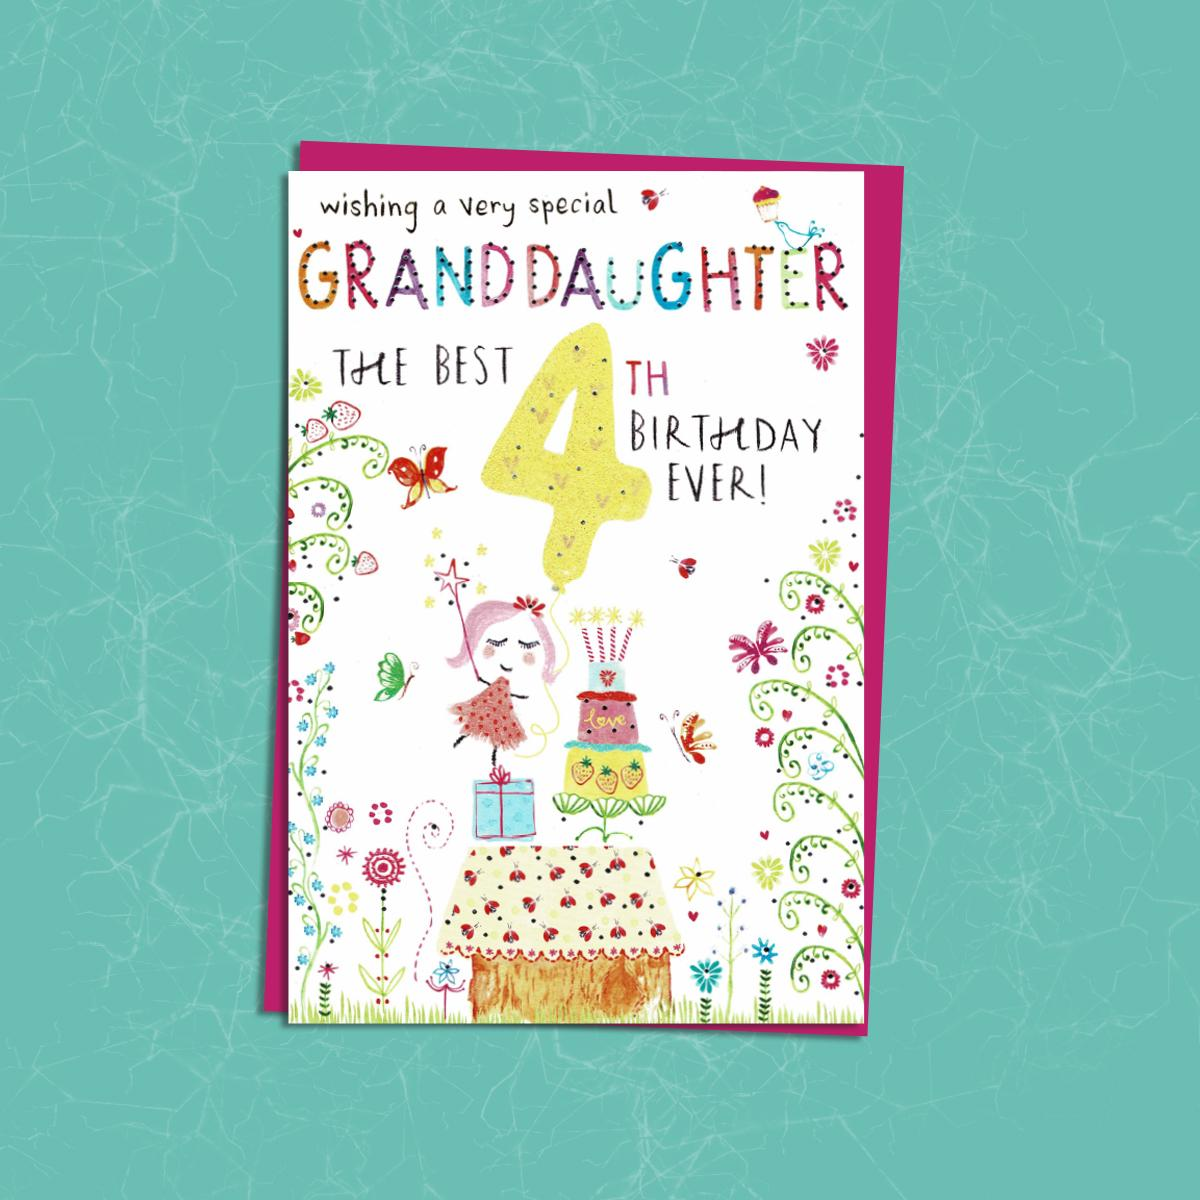 Granddaughter Age 4 Birthday Card Sitting On A Display Shelf